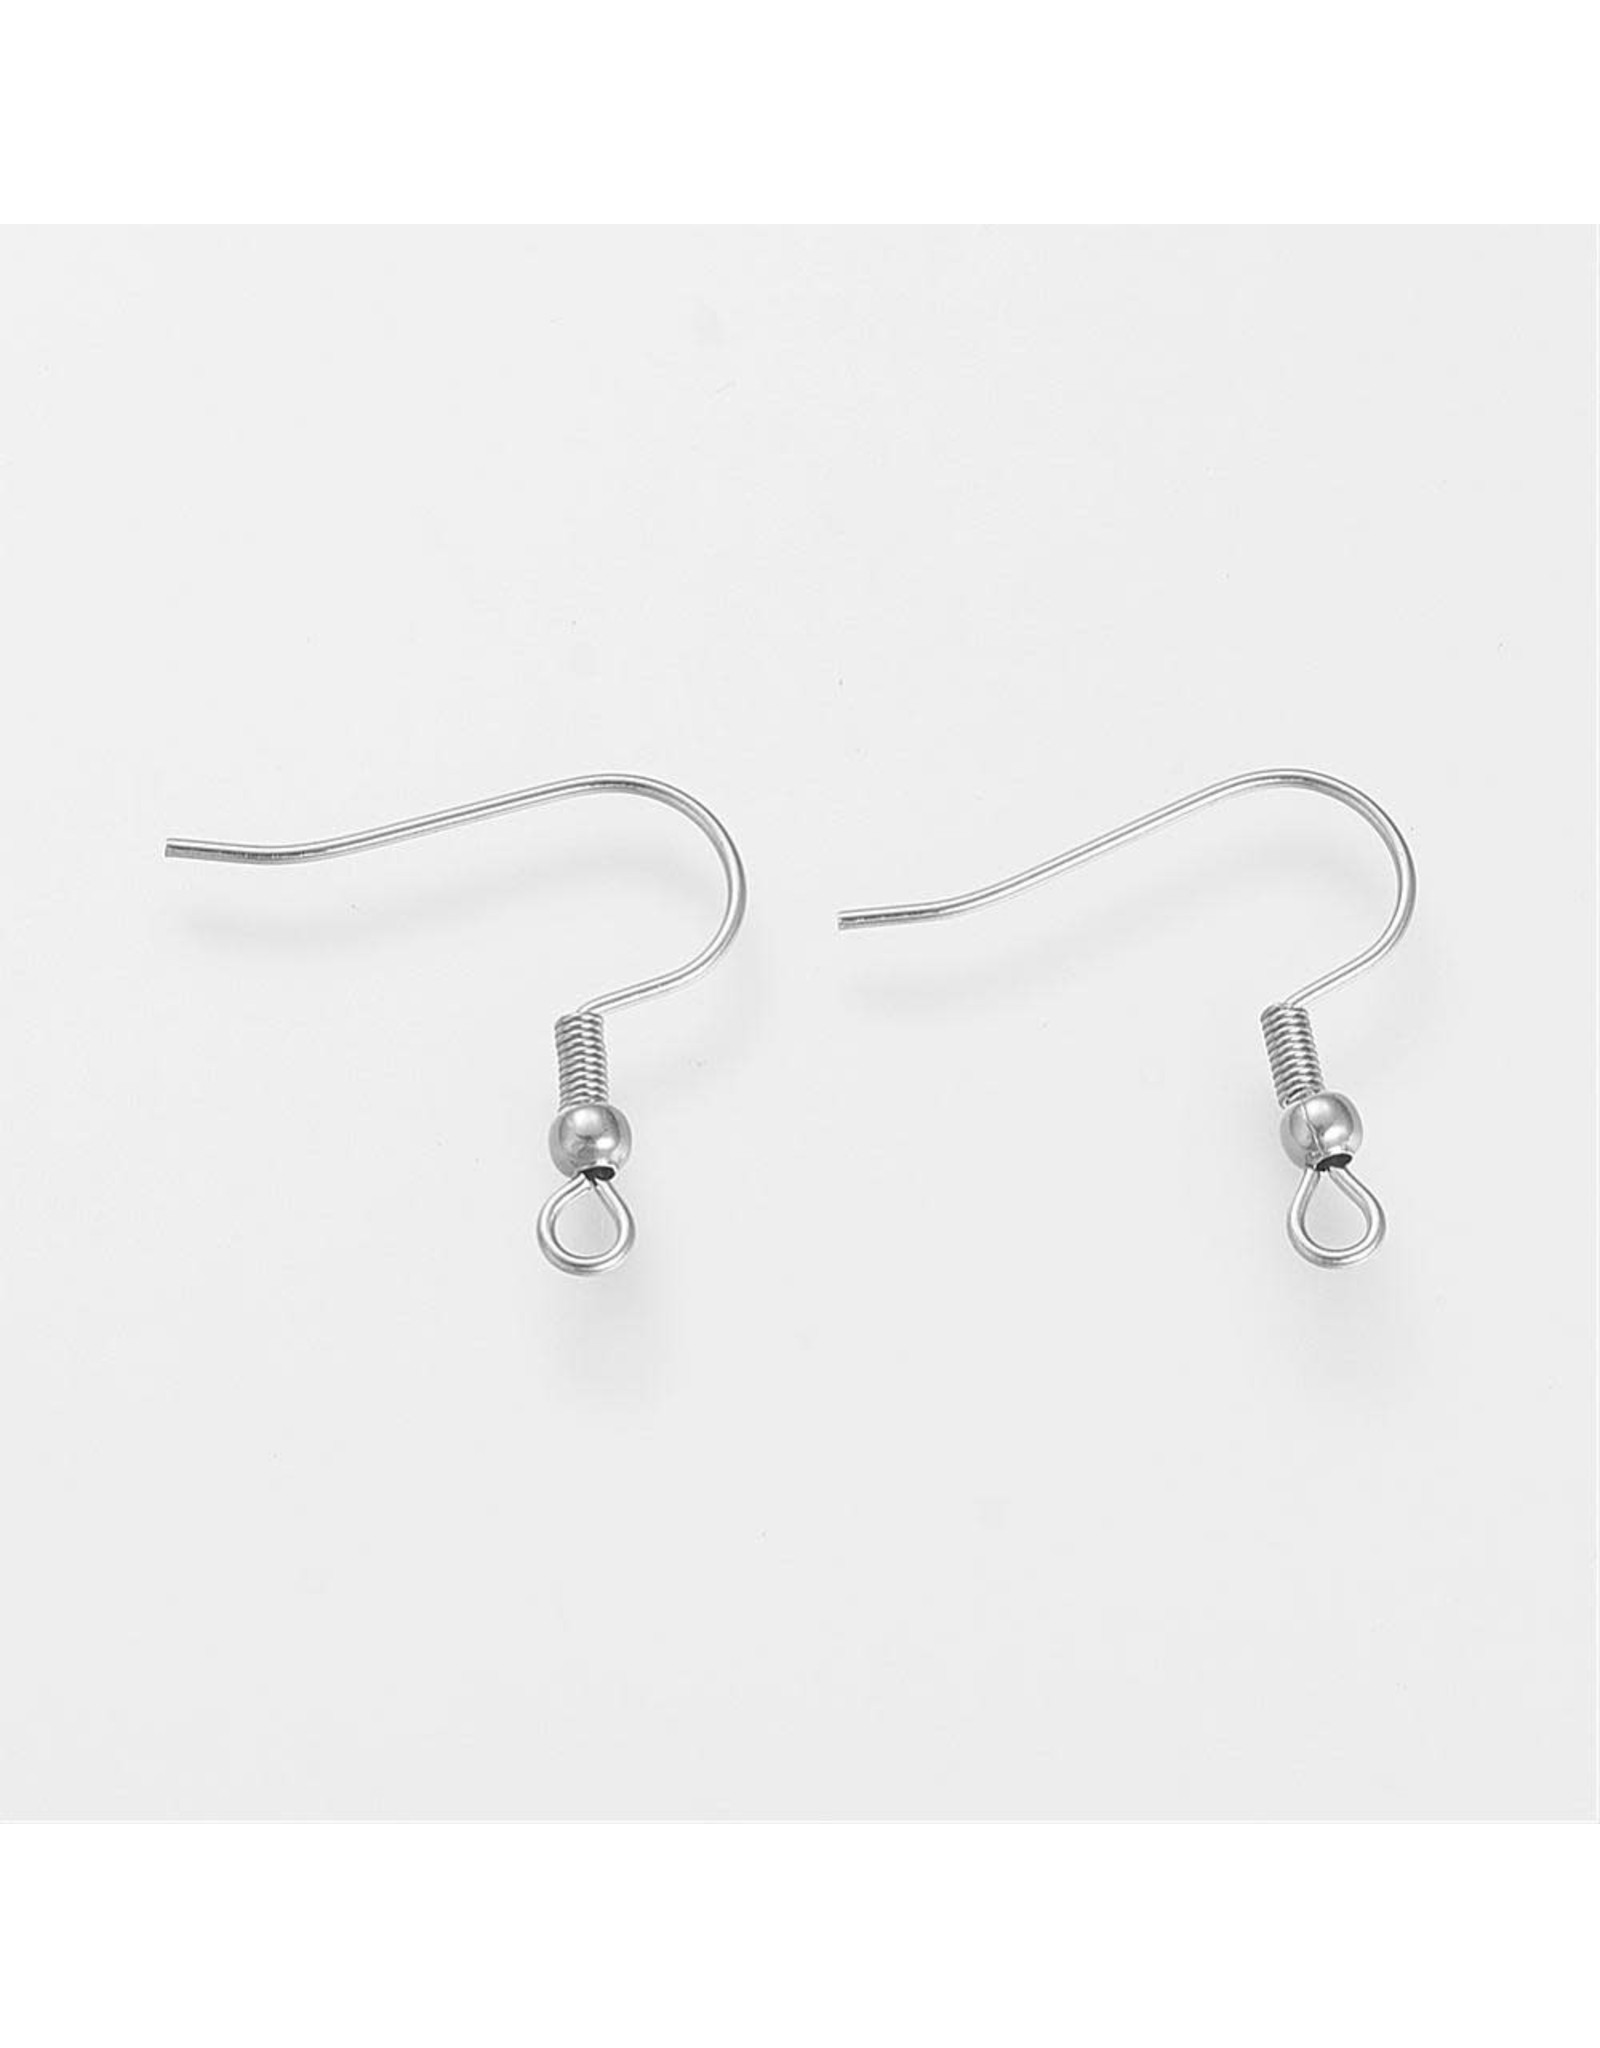 Ear Wire 21x21mm Stainless Steel   x10